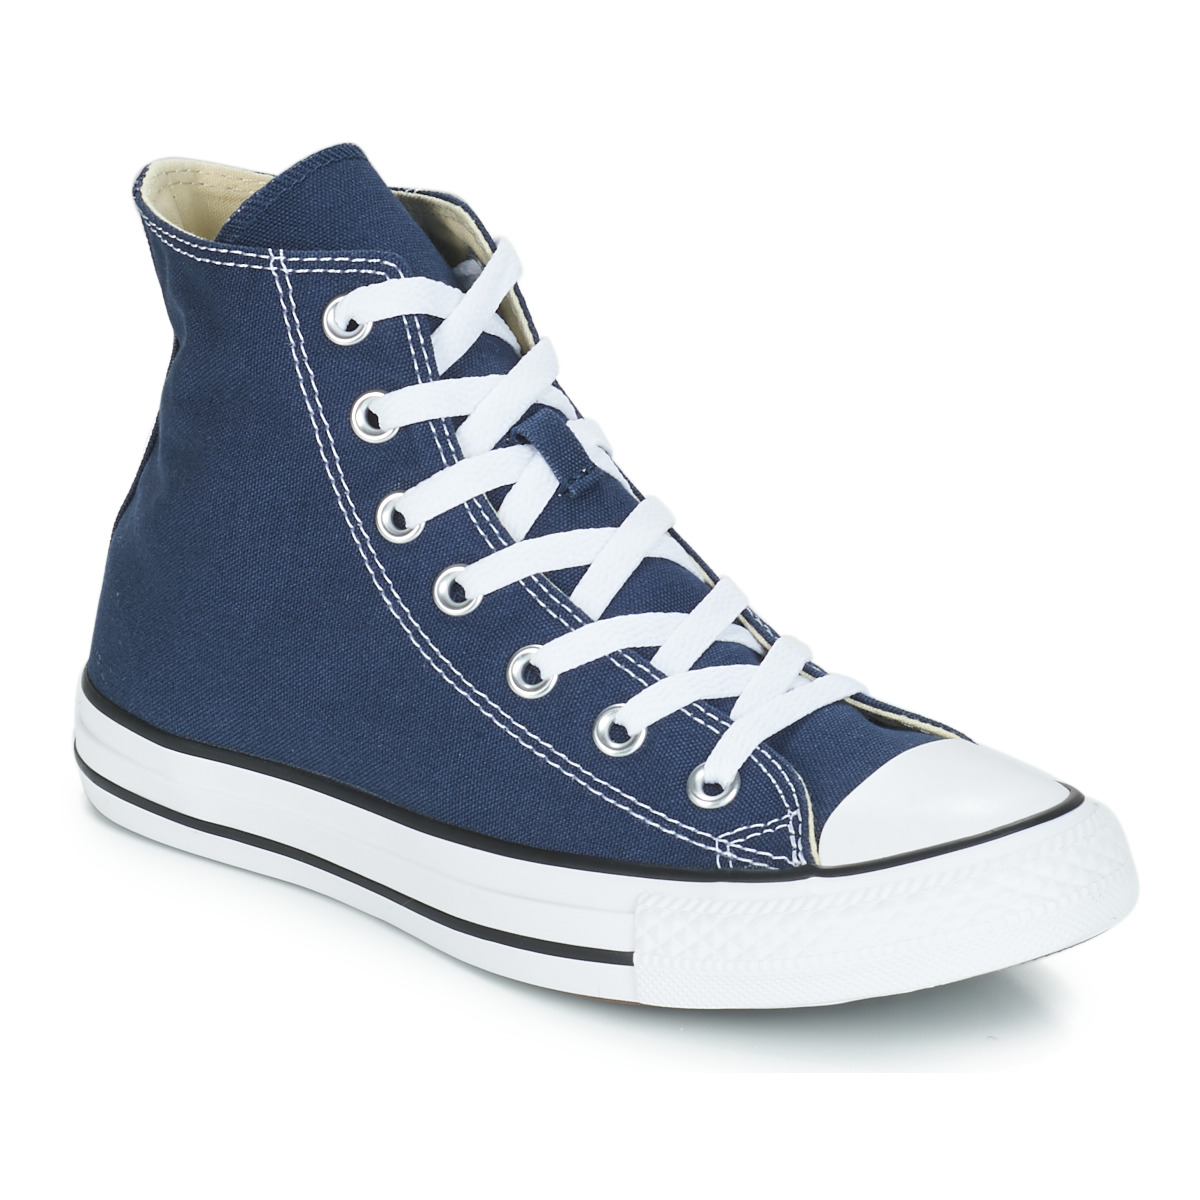 Converse CHUCK TAYLOR ALL STAR CORE HI Marine - Fast delivery